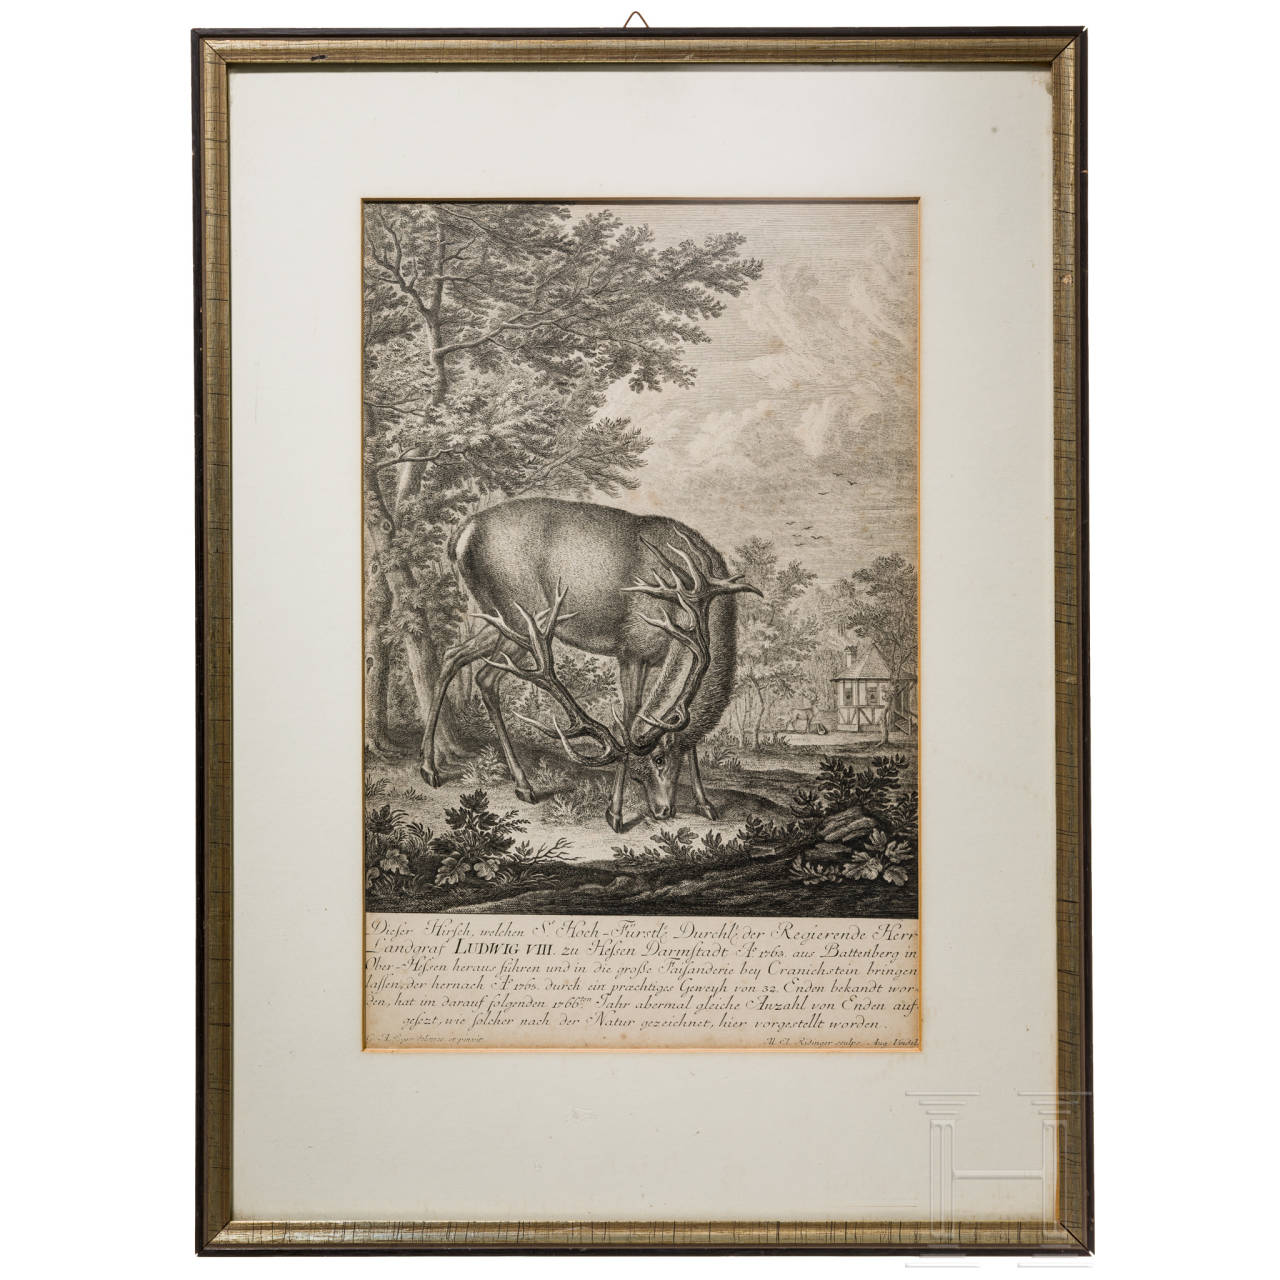 Johann Elias Ridinger (1698 - 1767), copper engraving with a deer, undated